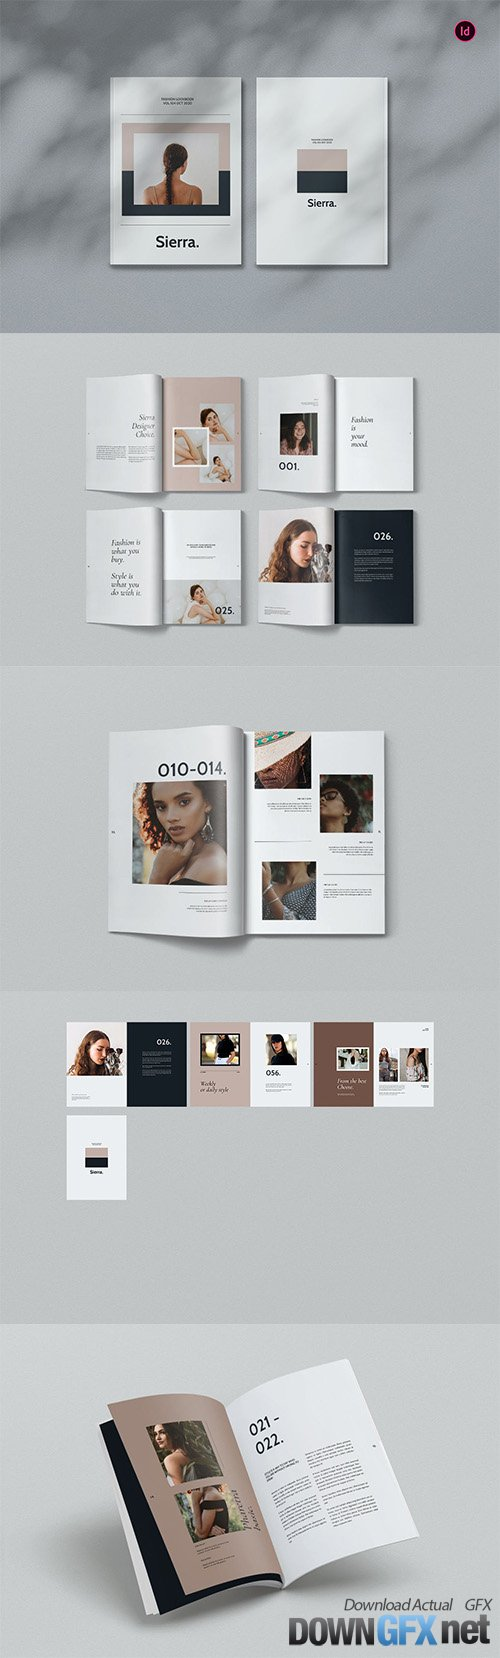 Sierra Fashion Magazine Template BL